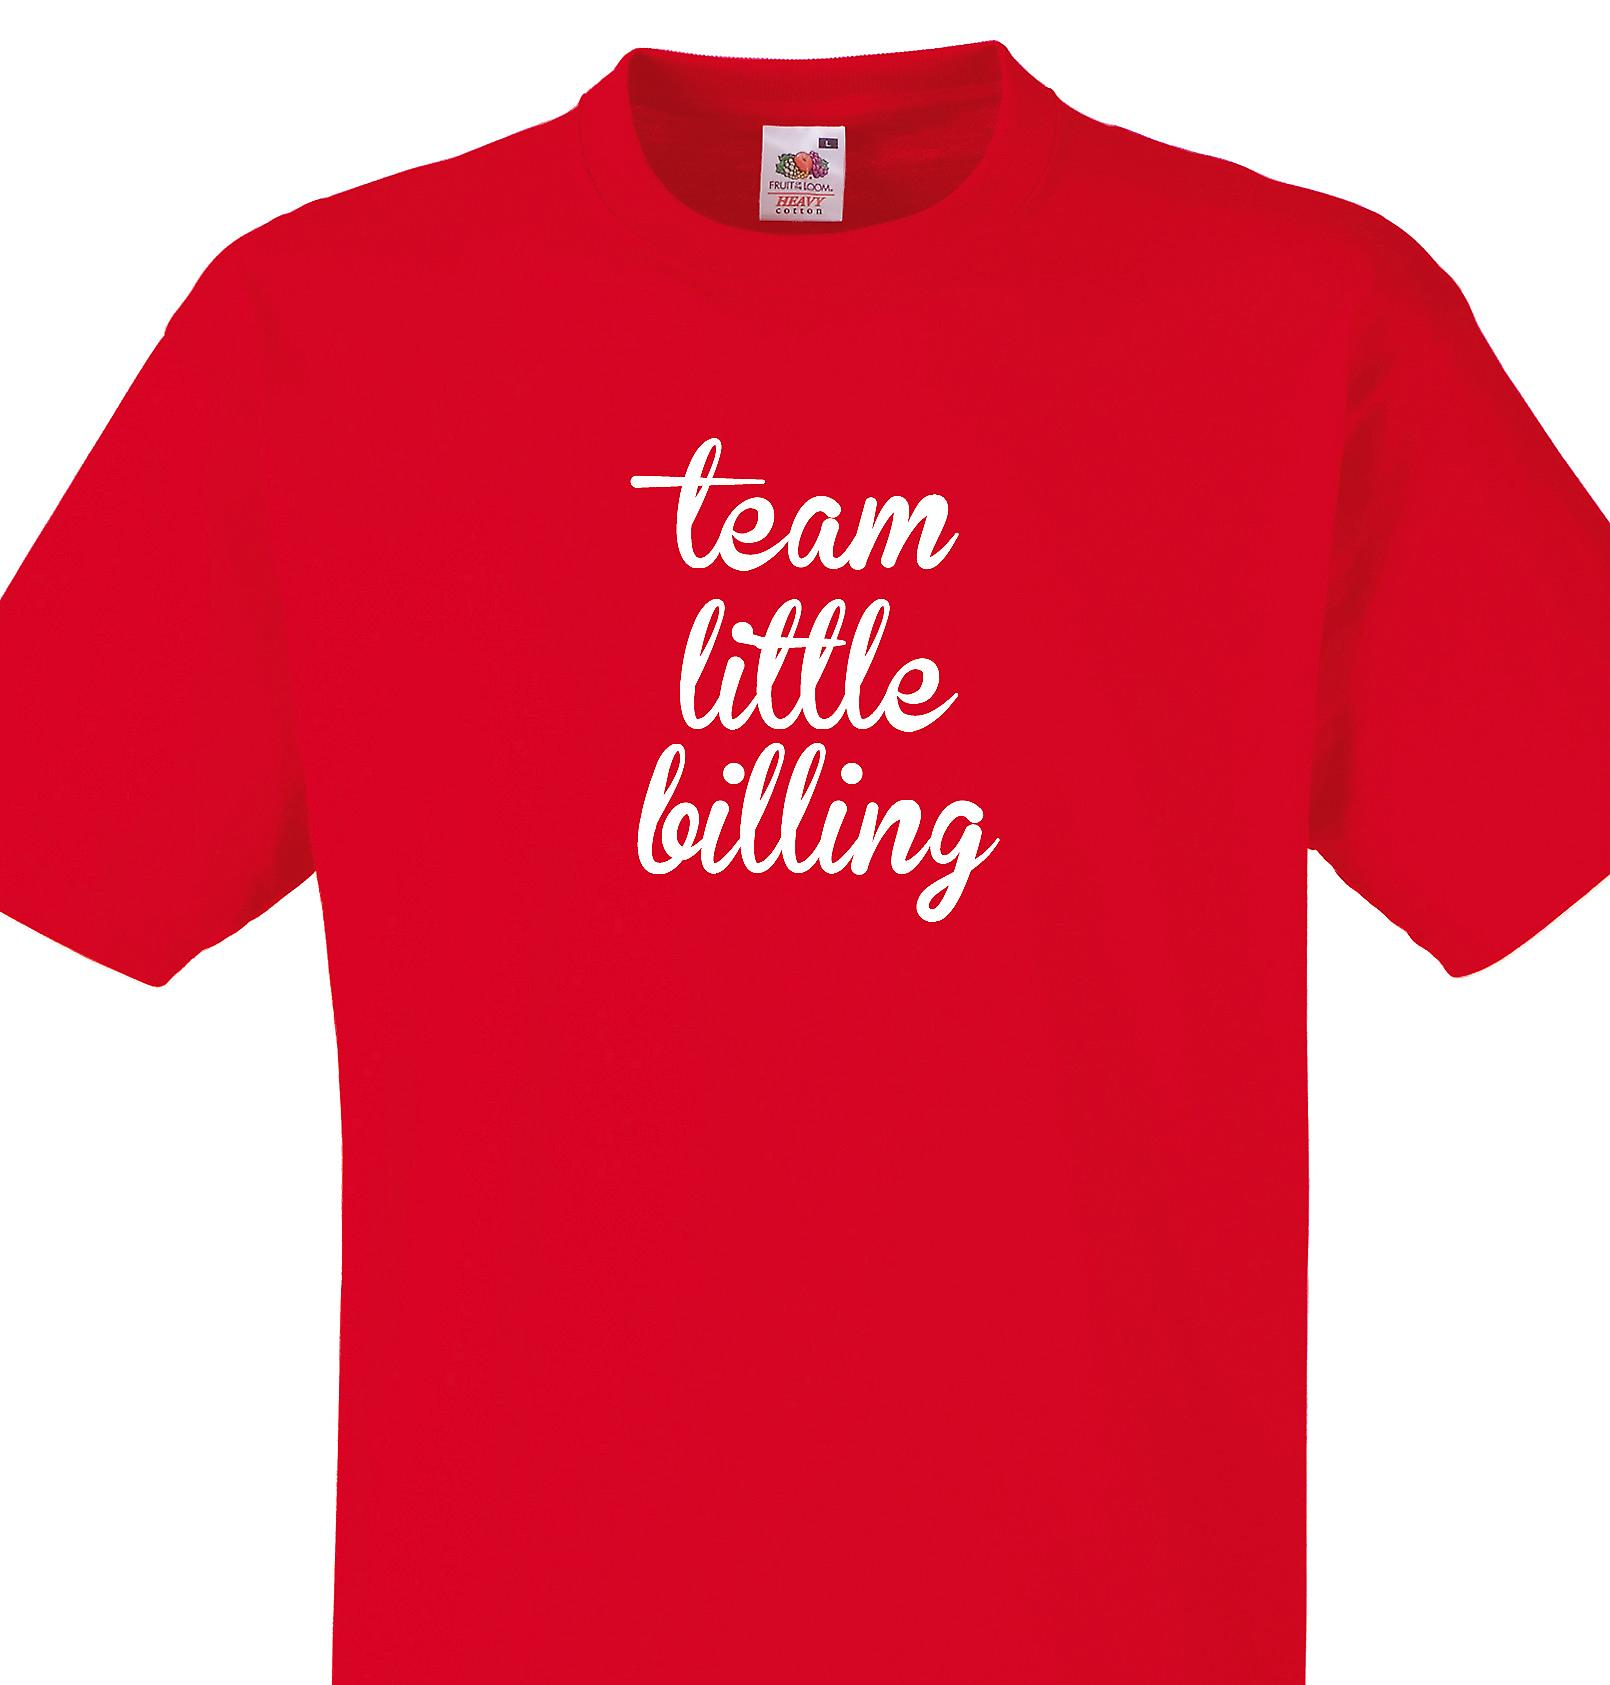 Team Little billing Red T shirt